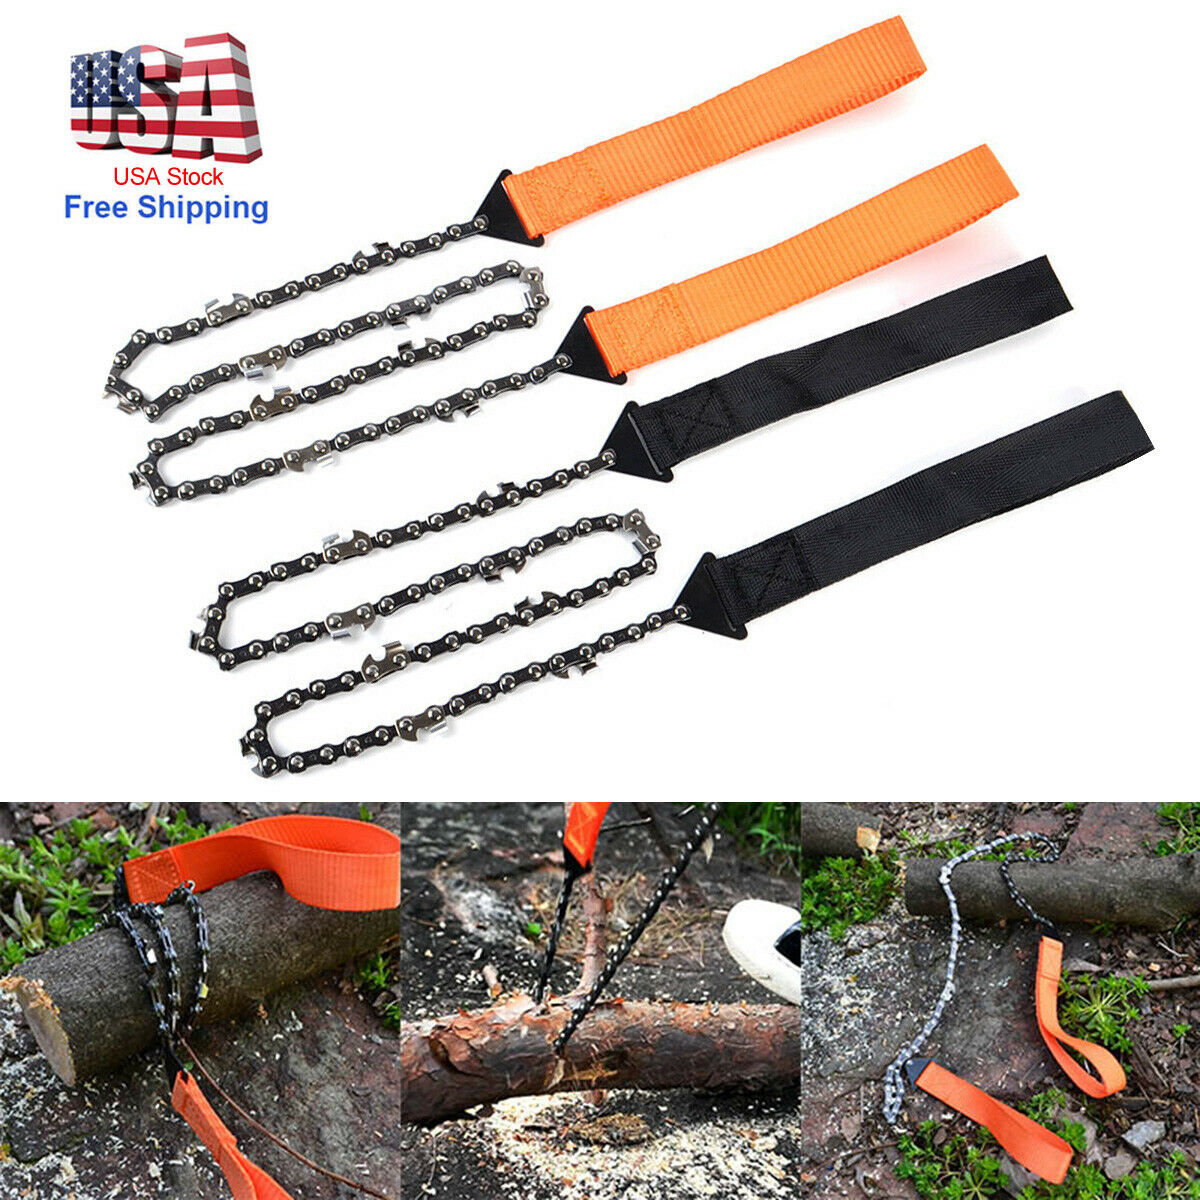 Portable Survival Chain Saw Pocket Garden Hand ChainSaw Camping Tool Emergency